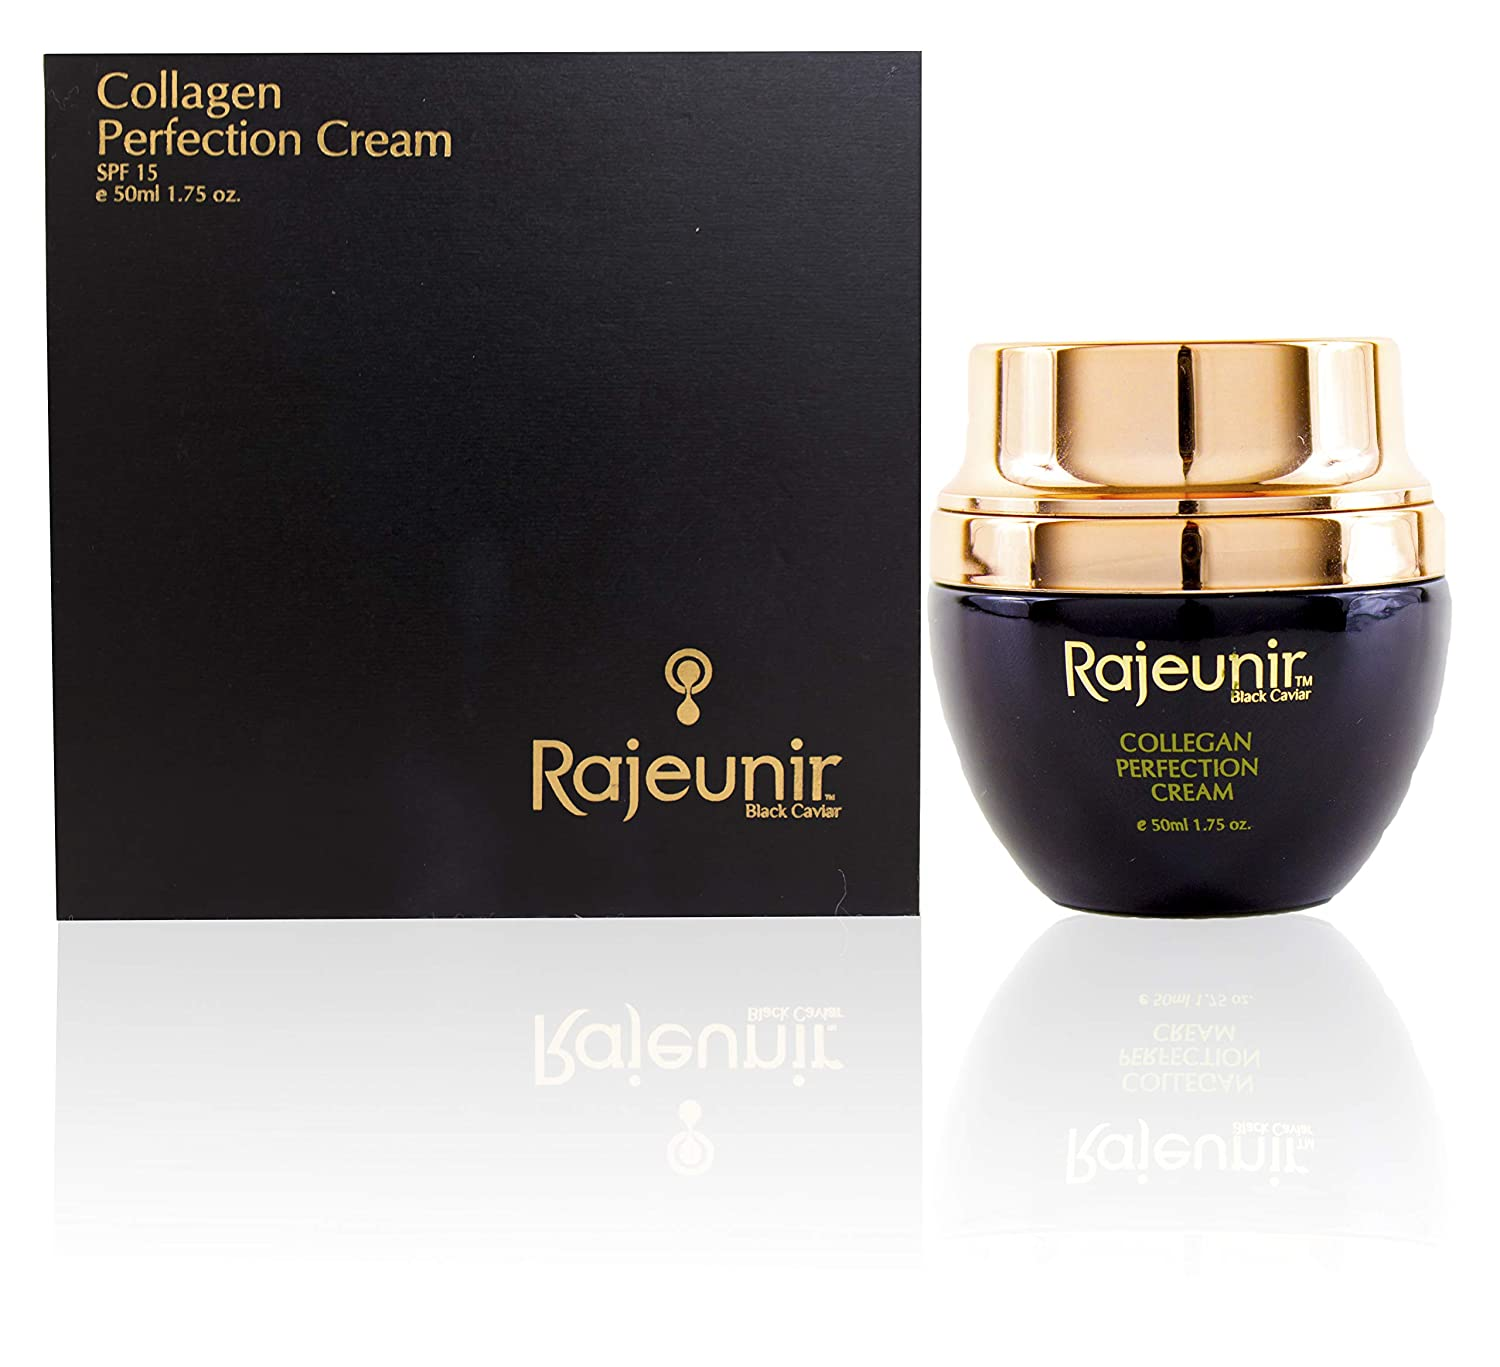 Rajeunir Black Caviar Collagen Perfection Cream is Enhanced With Natural Collagen That Deeply Hydrates the Skin and Bestows It With a Younger, Fresher Appearance